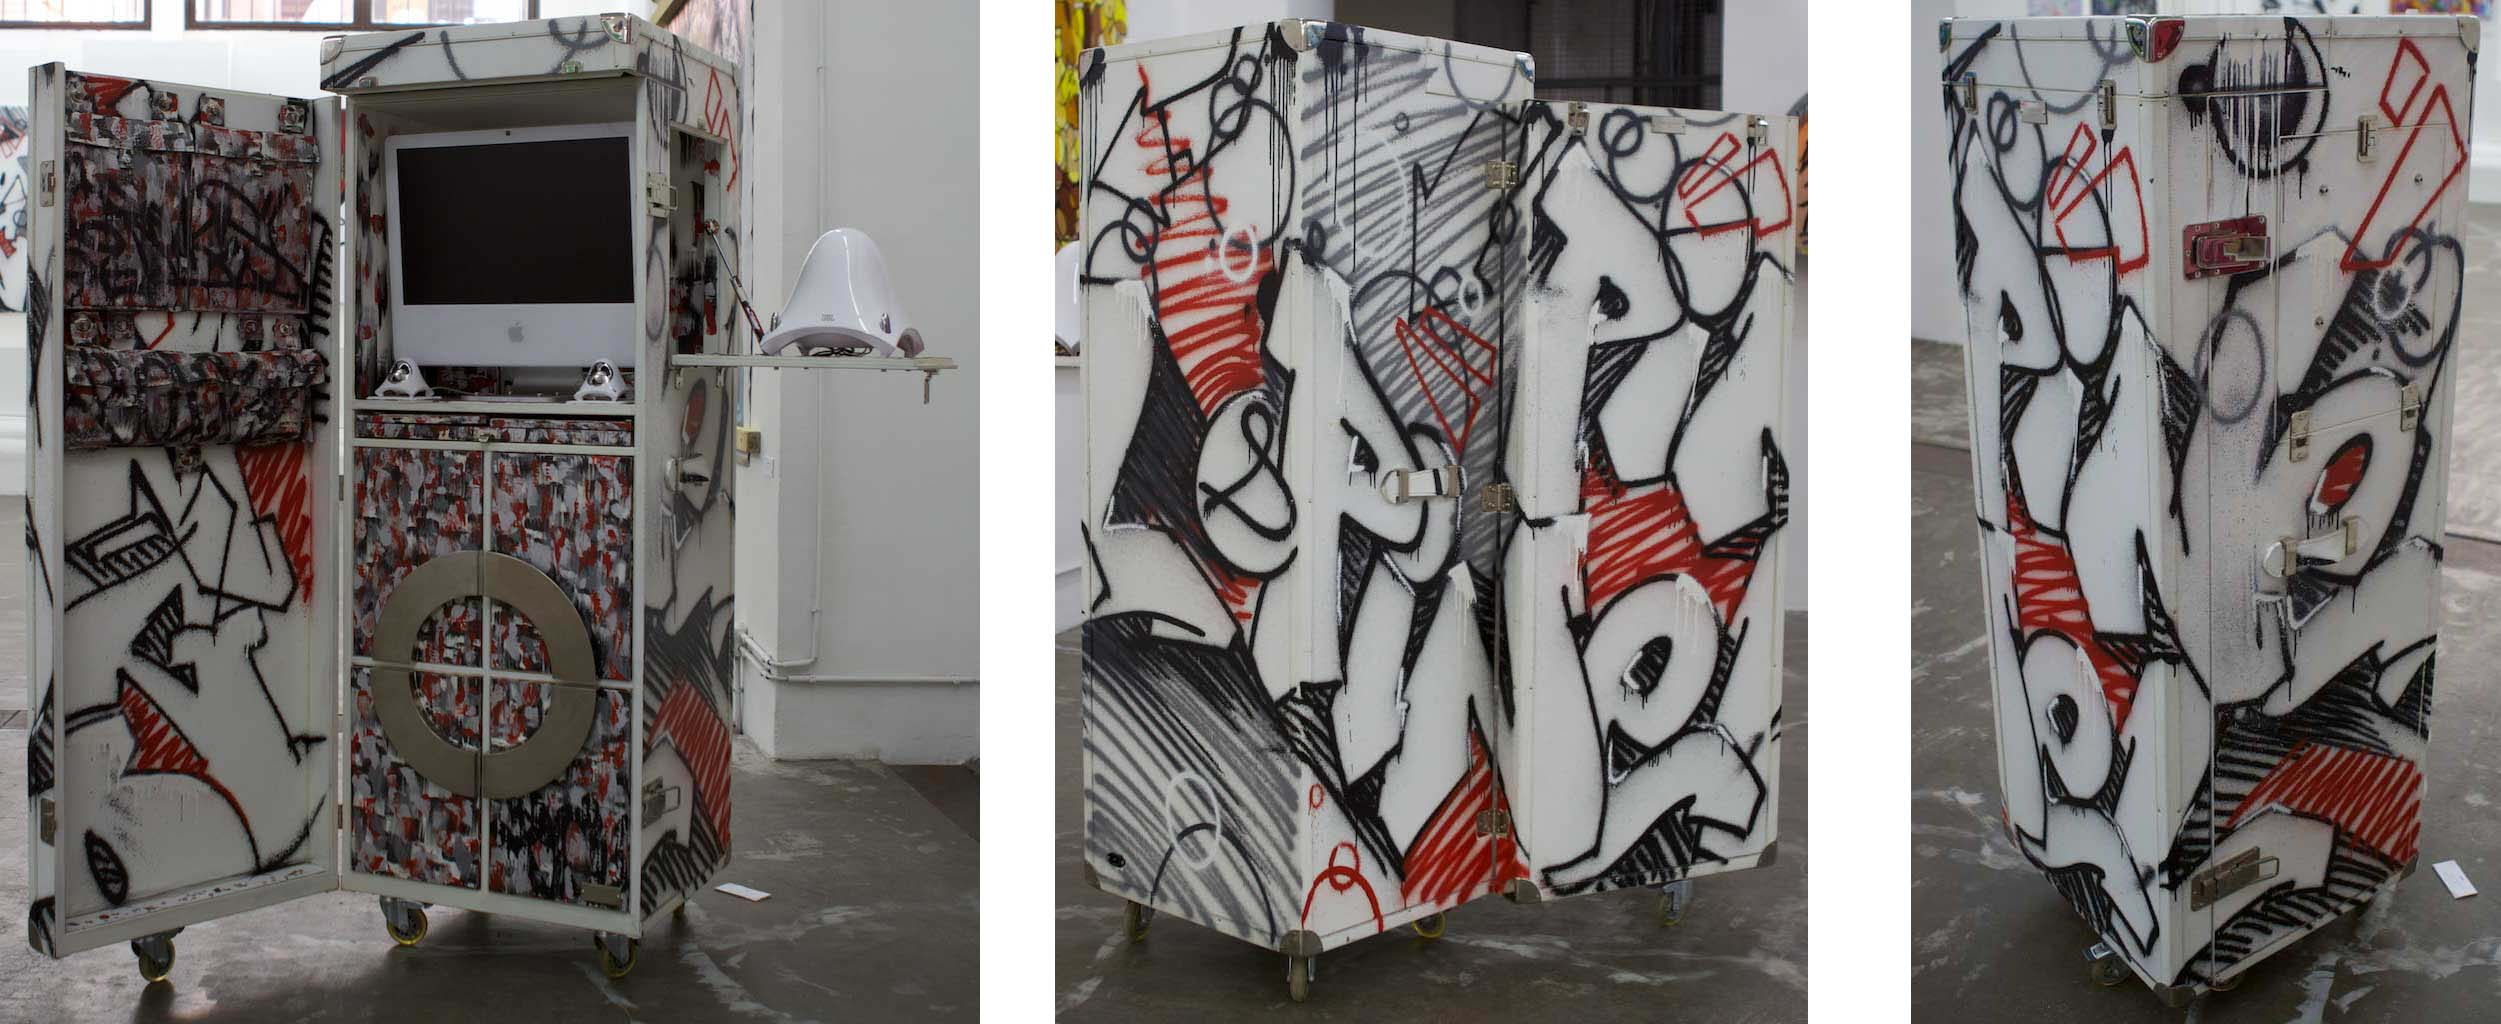 Pinel & Pinel, Kongo et Colorz - I-Trunk - 2011